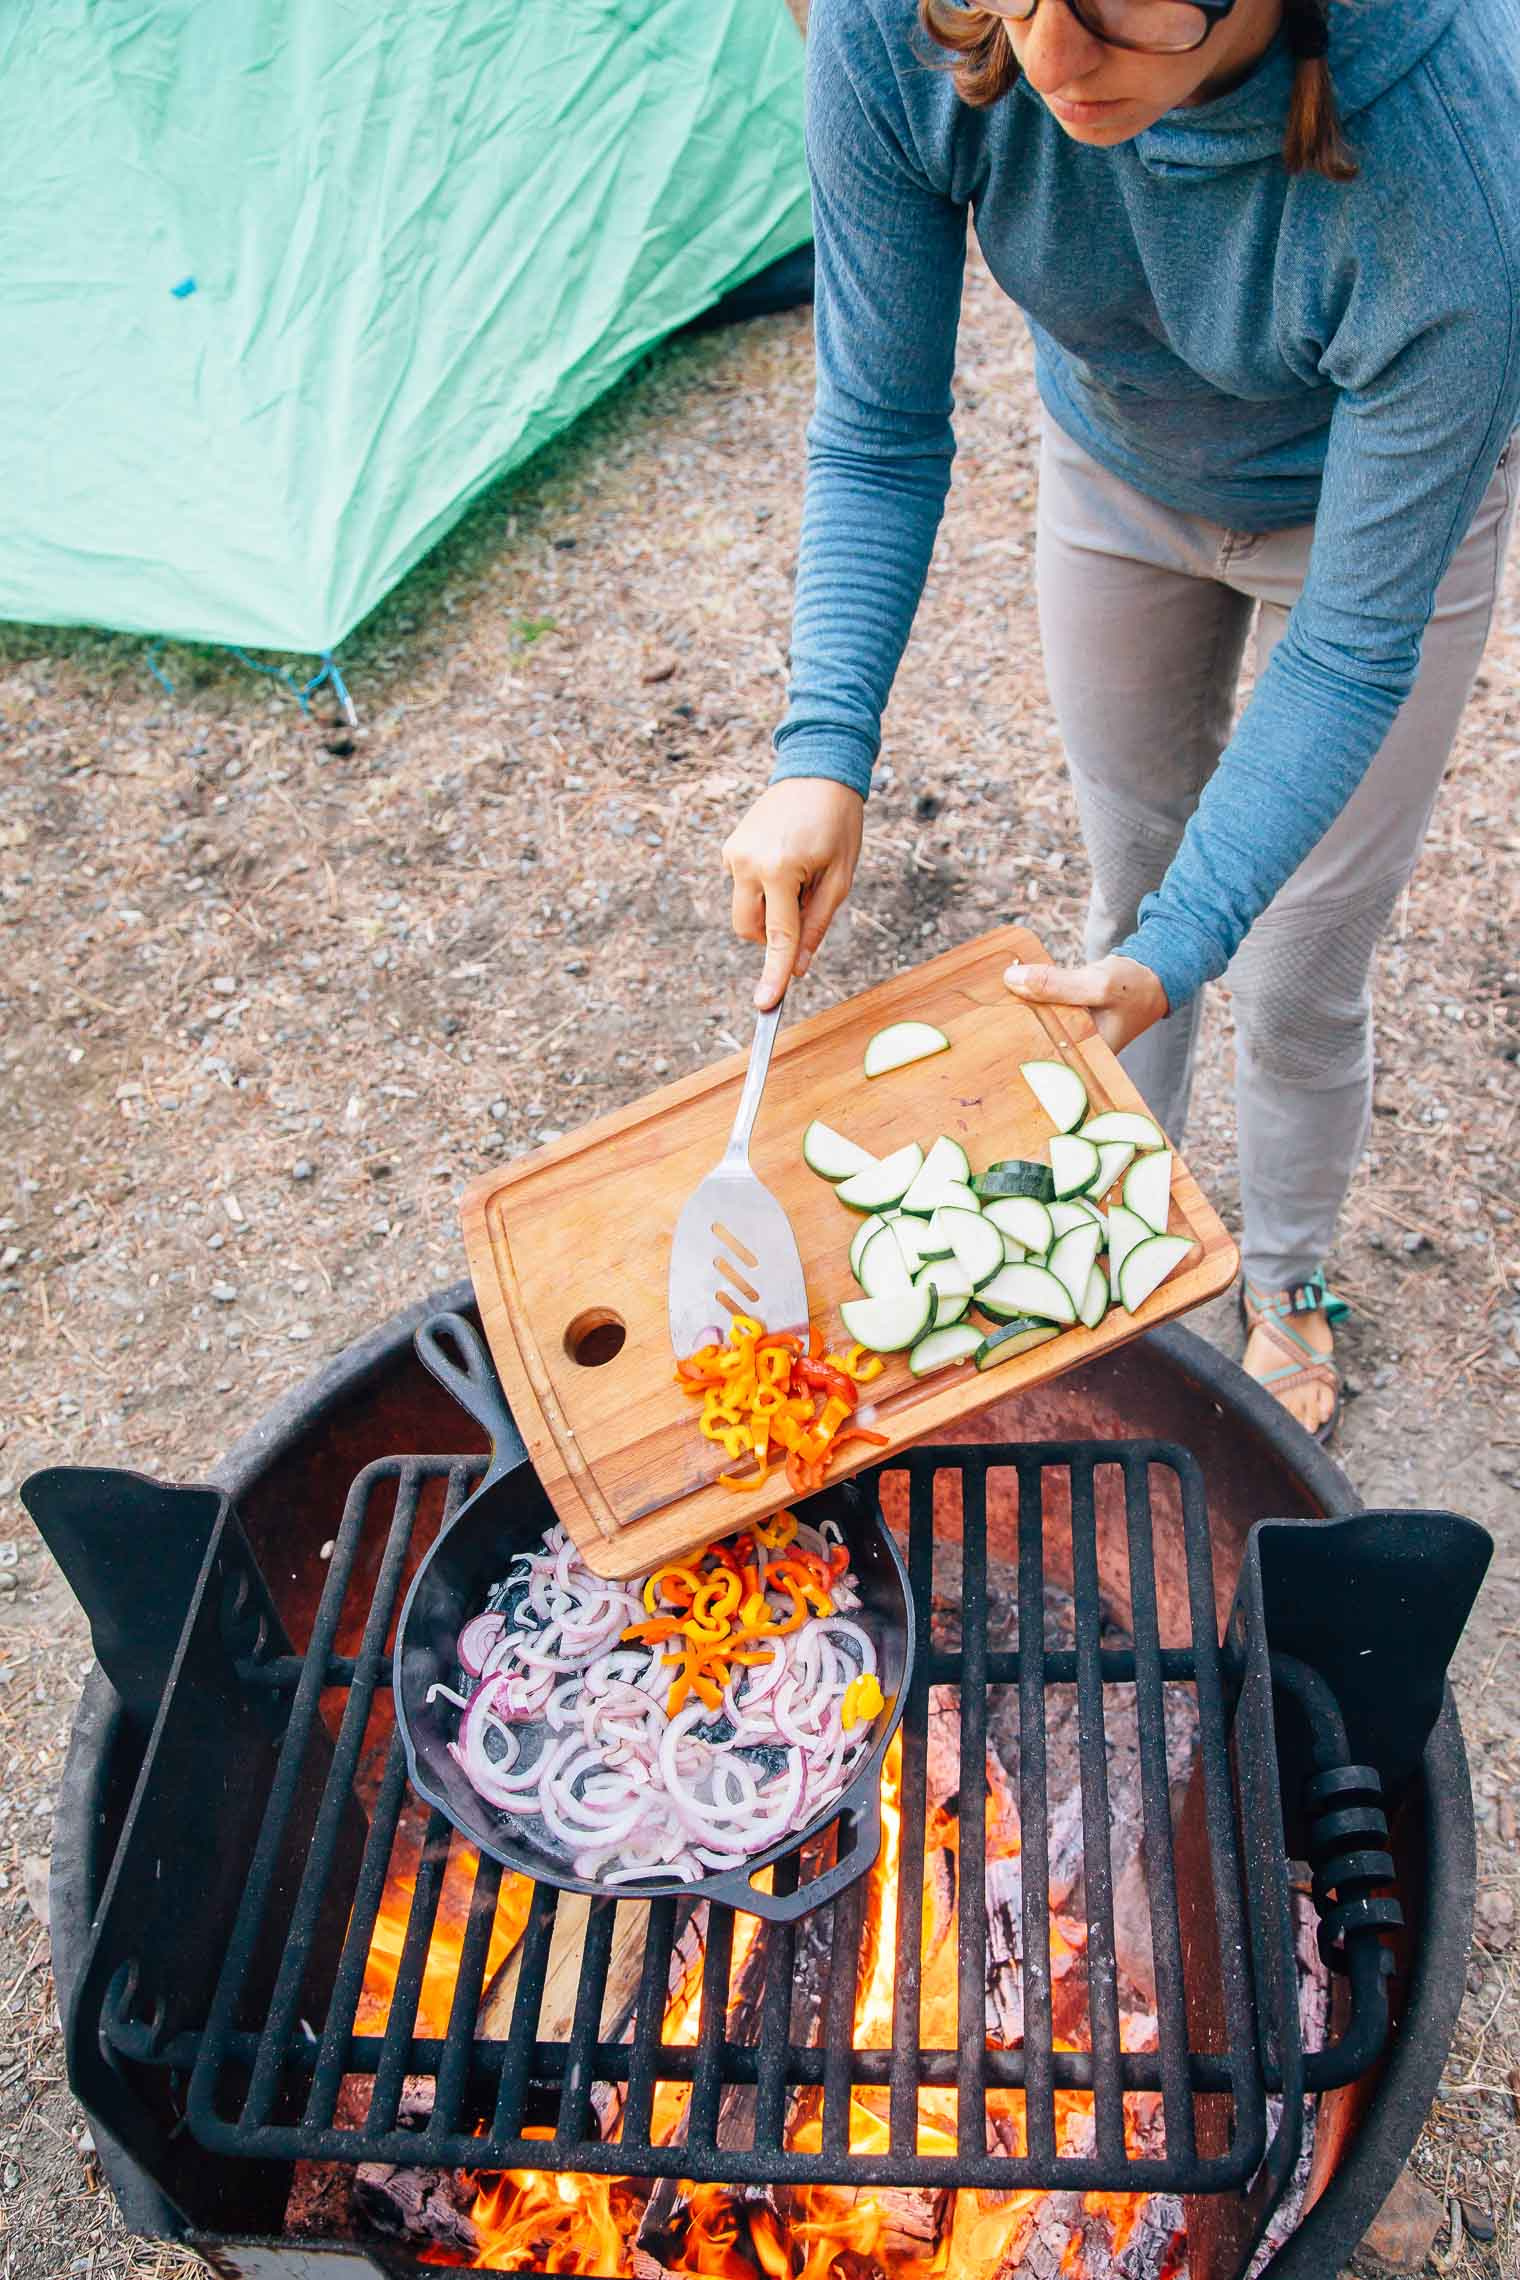 Megan is transferring chopped vegetables from a cutting board into a cast-iron skillet that's on a campfire